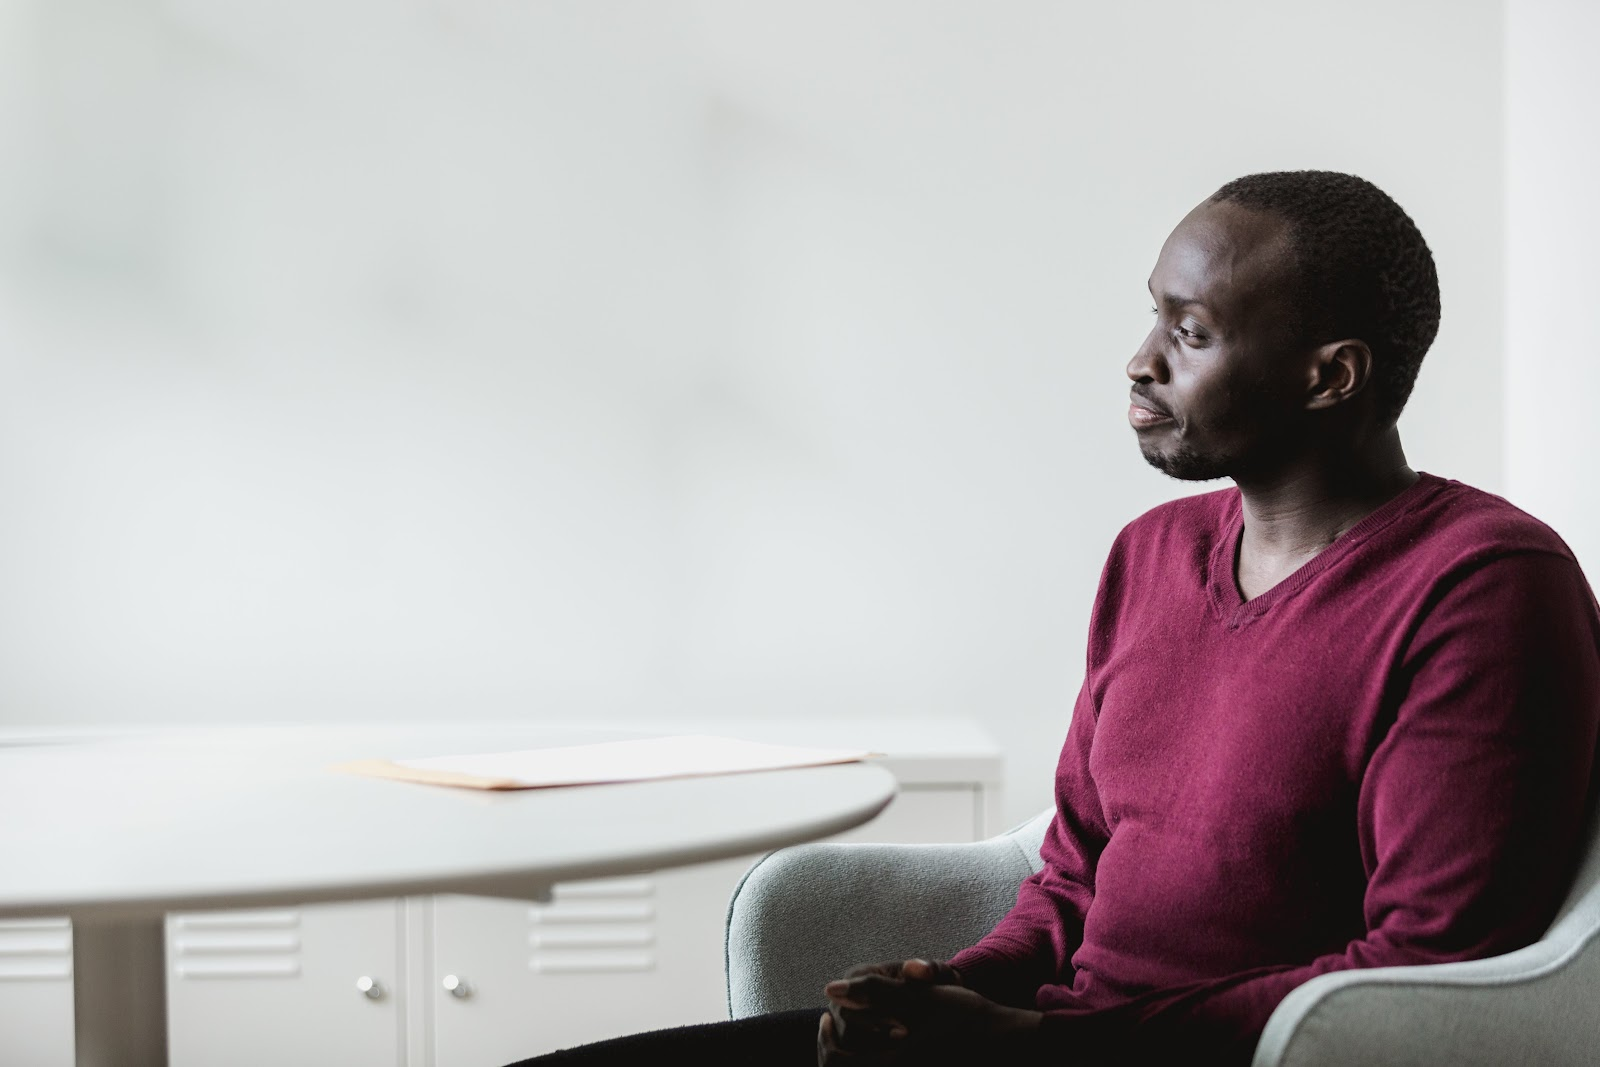 Man meditating and thinking in an office - meditation is a great way to overcome mental blocks | PulseBlueprint